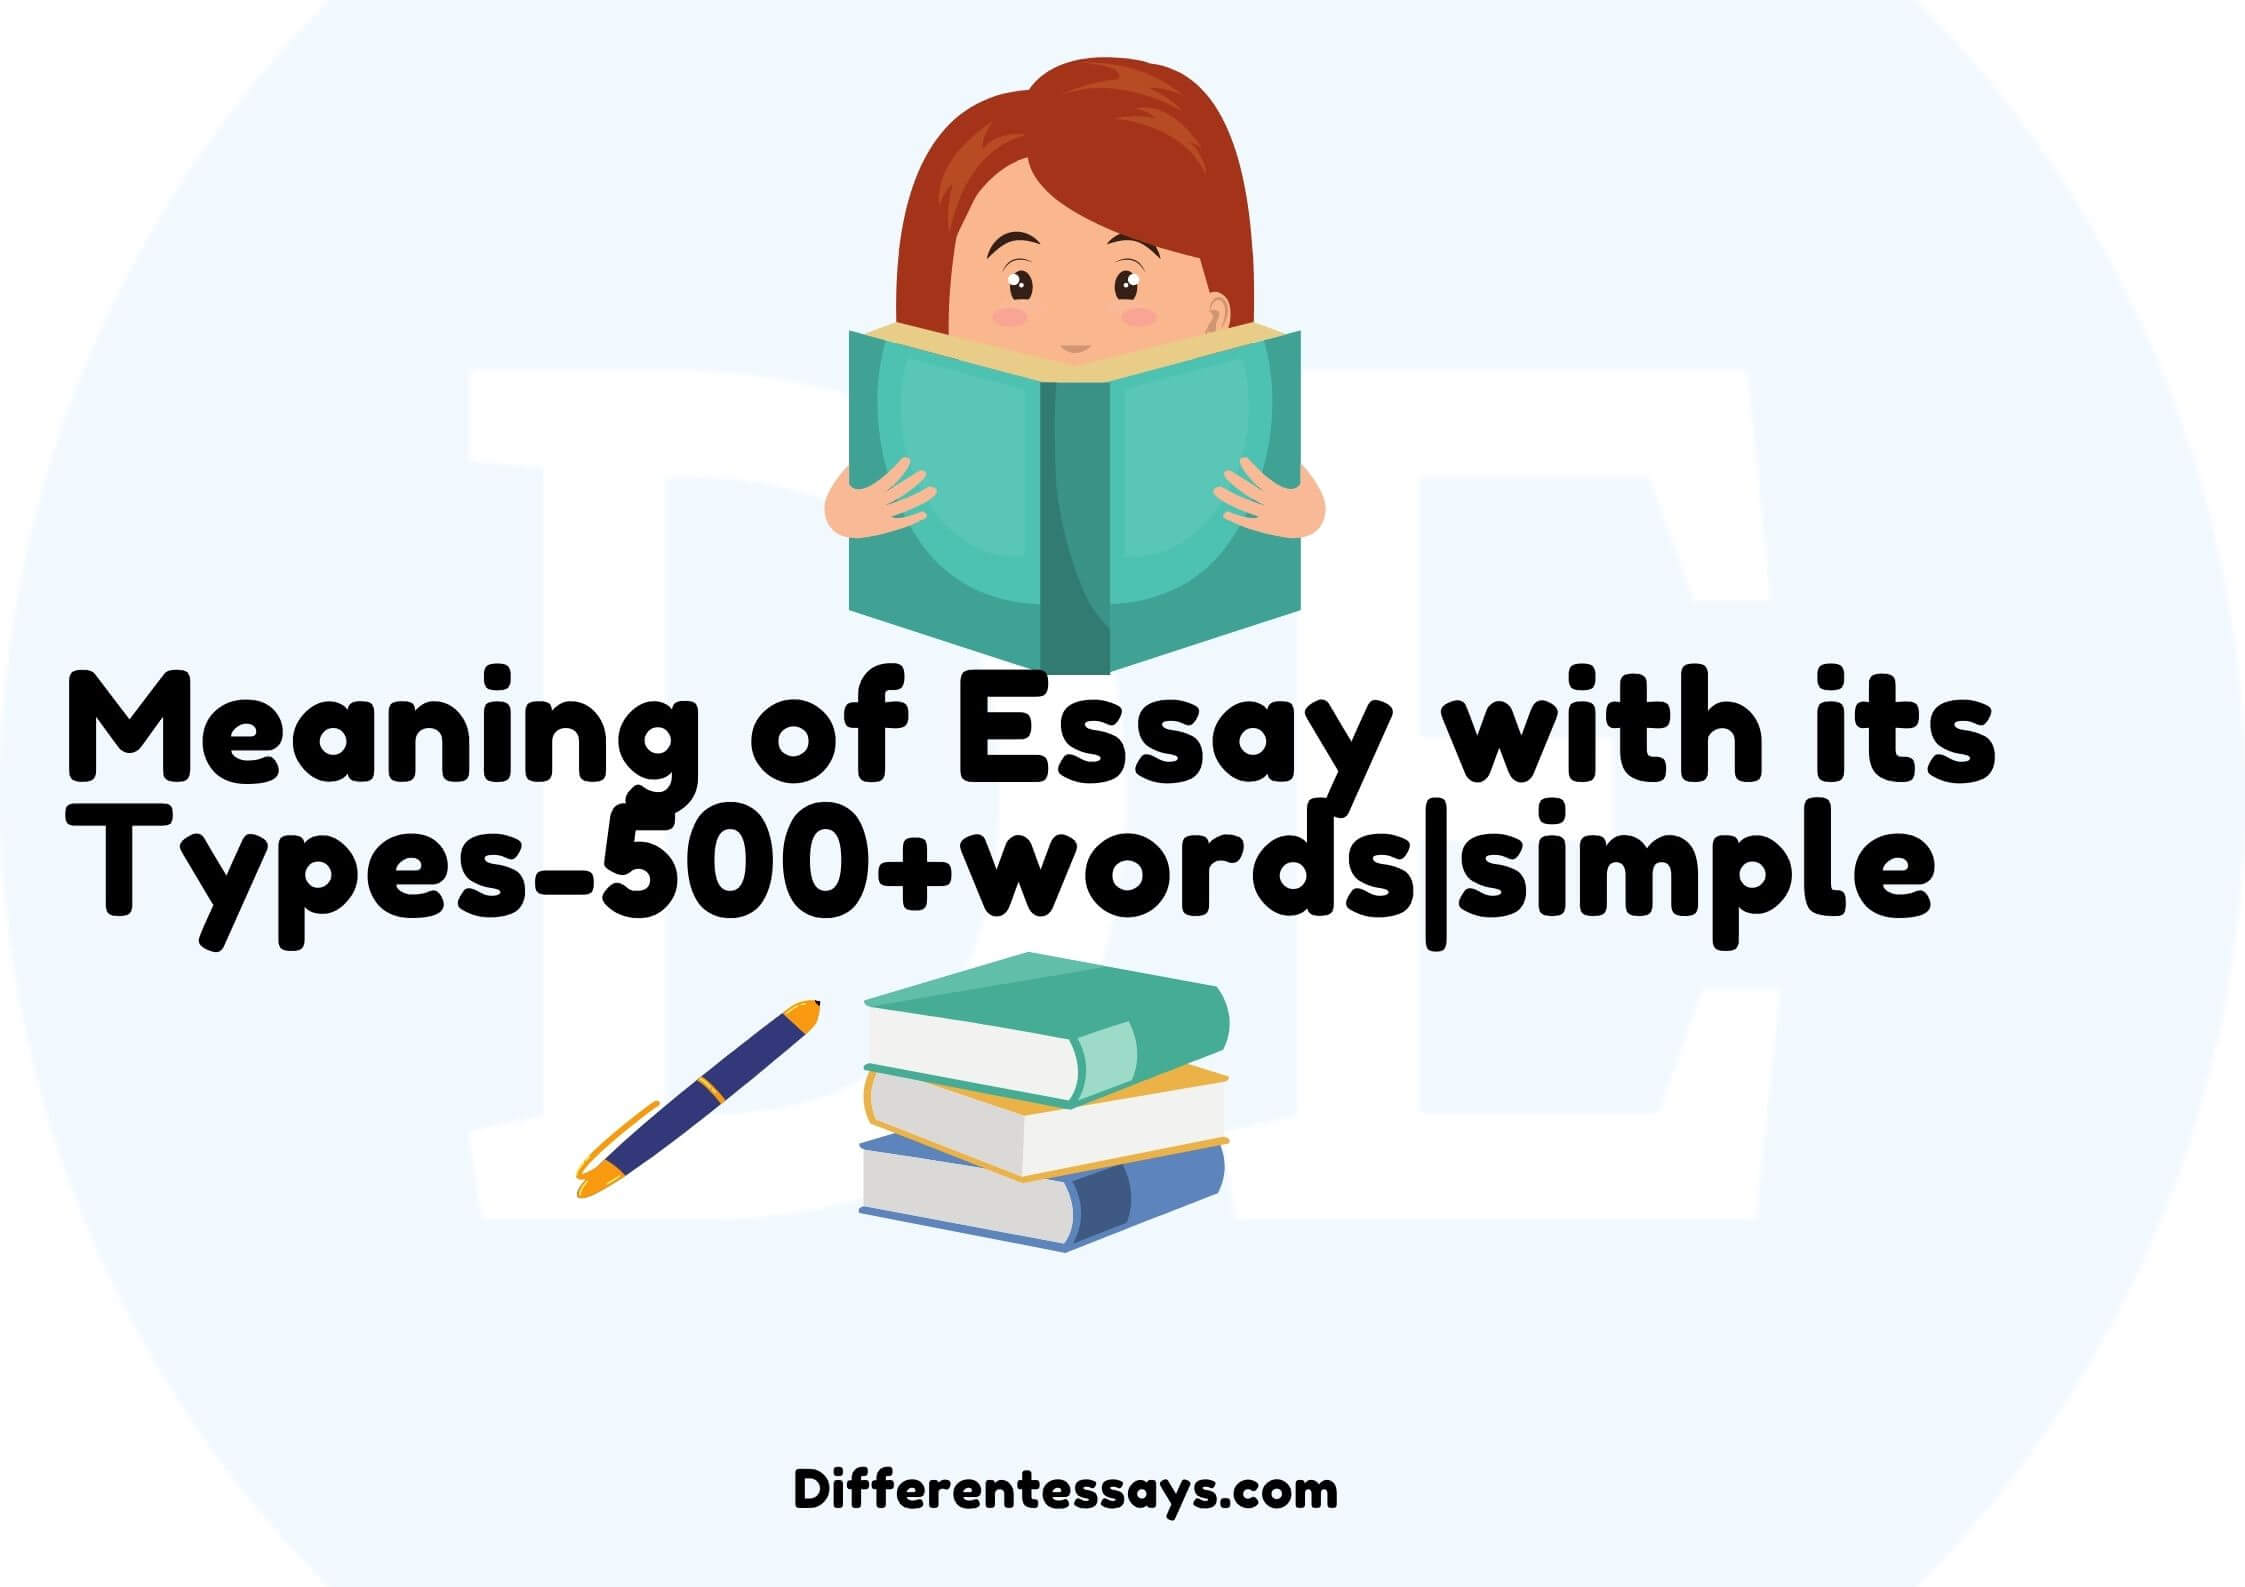 Meaning of Essay with its Types-500+words|simple